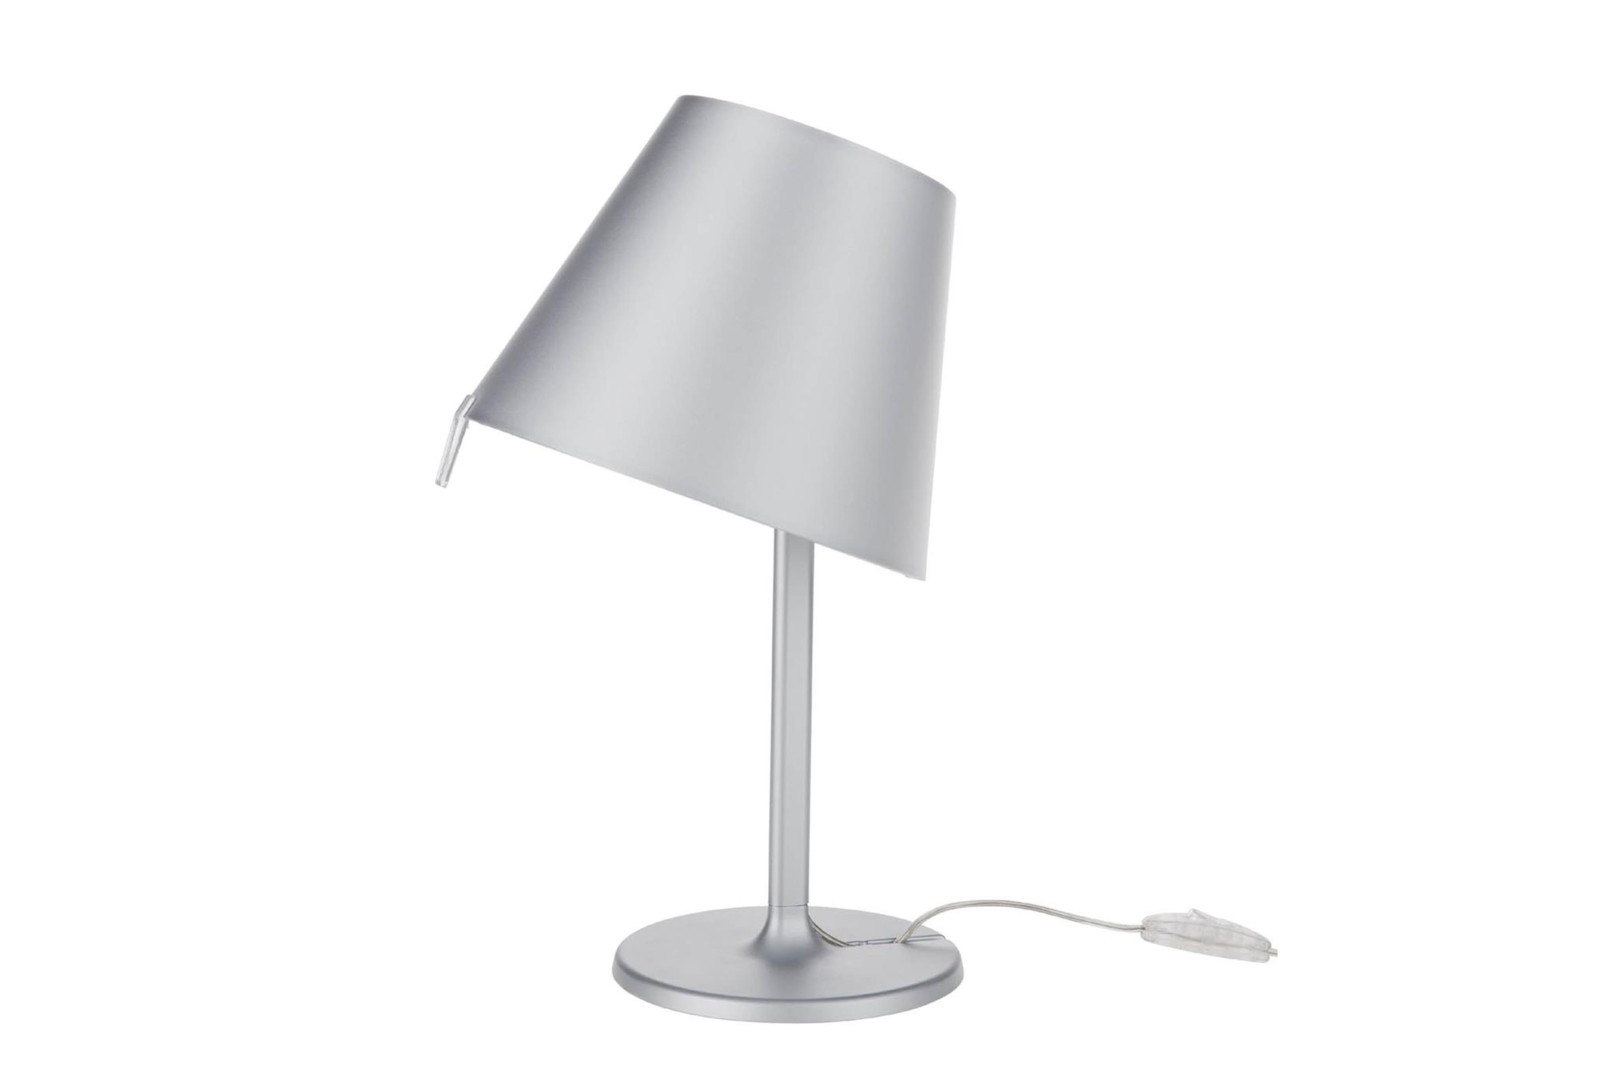 Melampo Notte Table Lamp - Set of 2 Grey